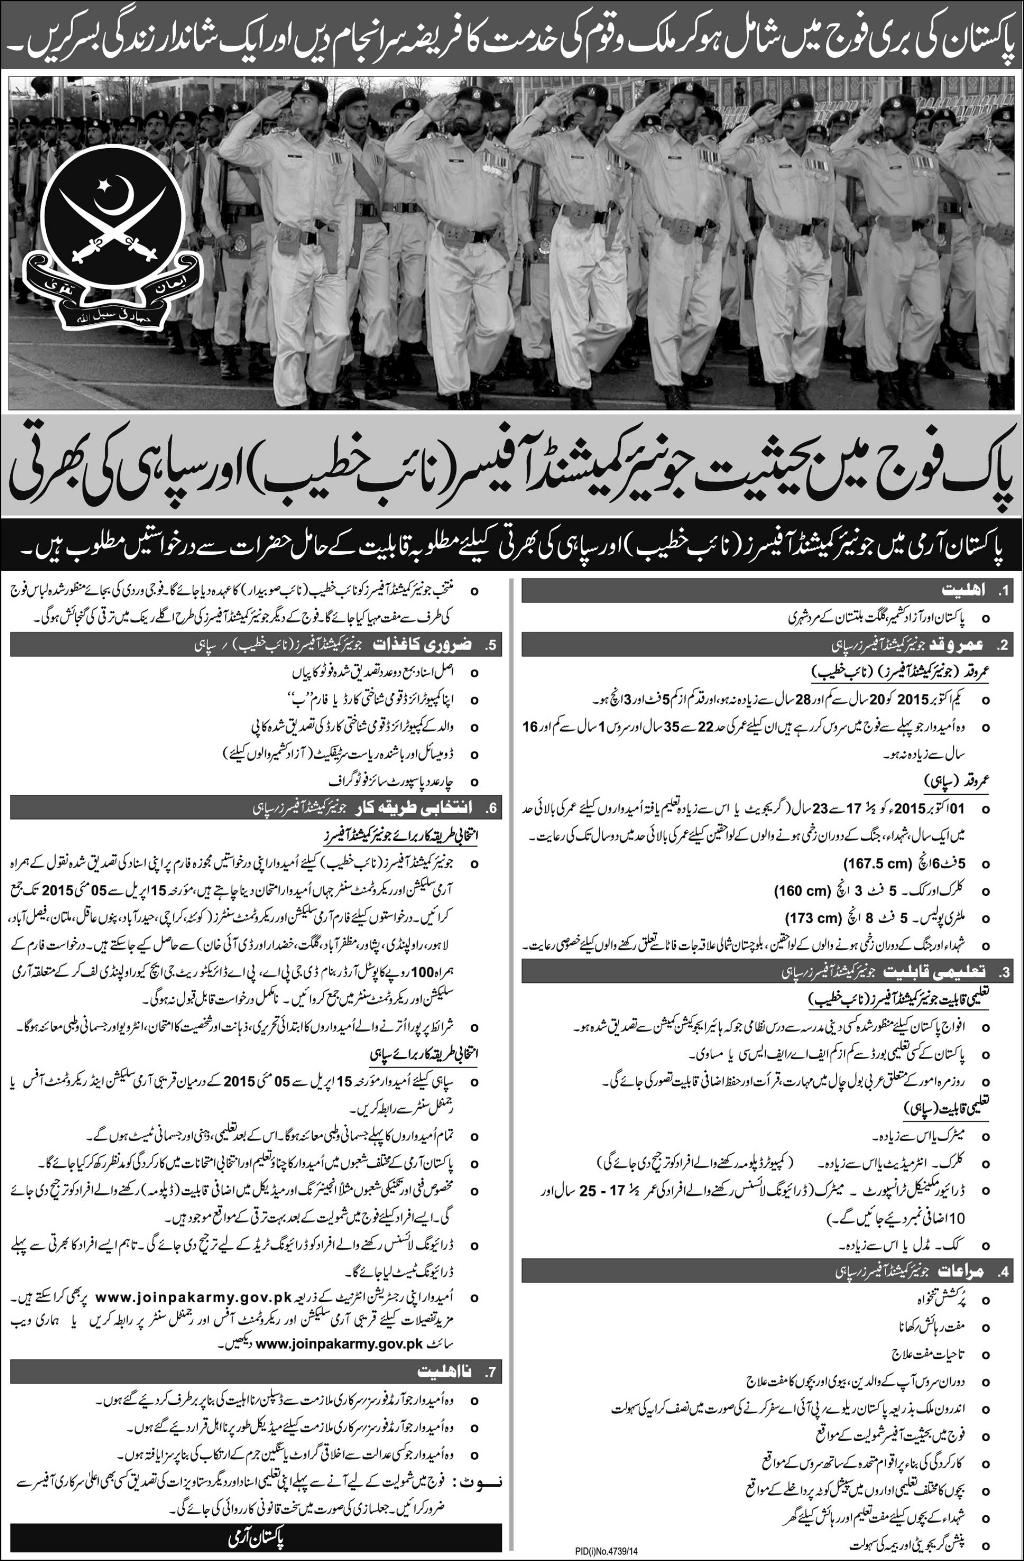 Join Pakistan Army as Soldier, Cook, Clerk, Military Police